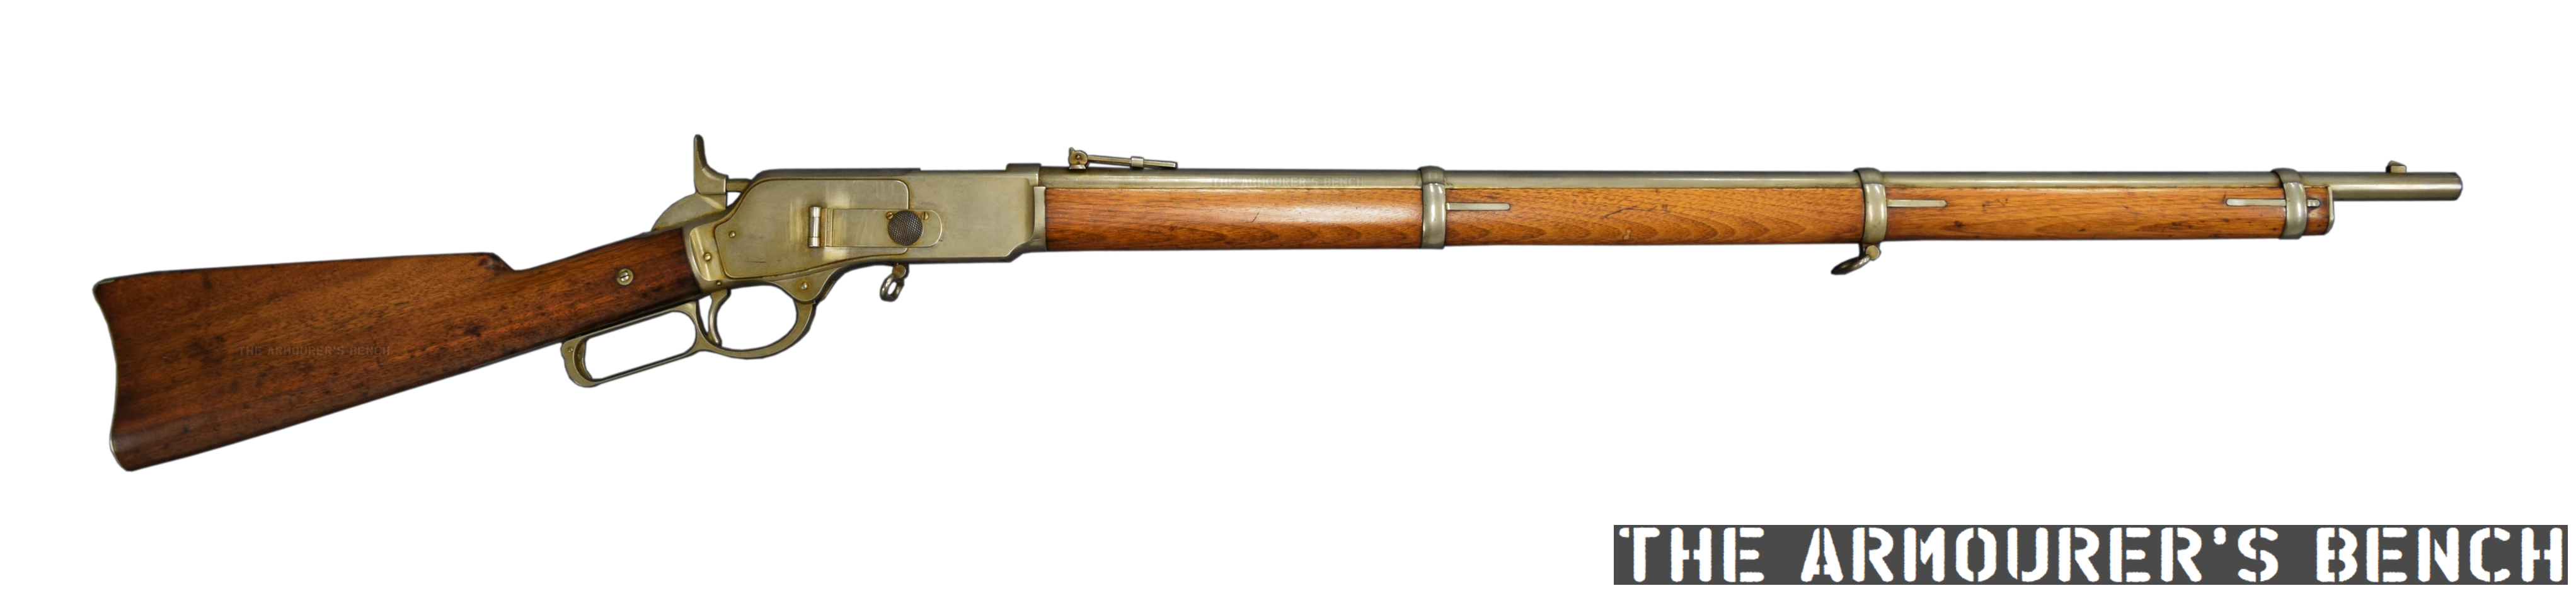 winchester_prototype_right